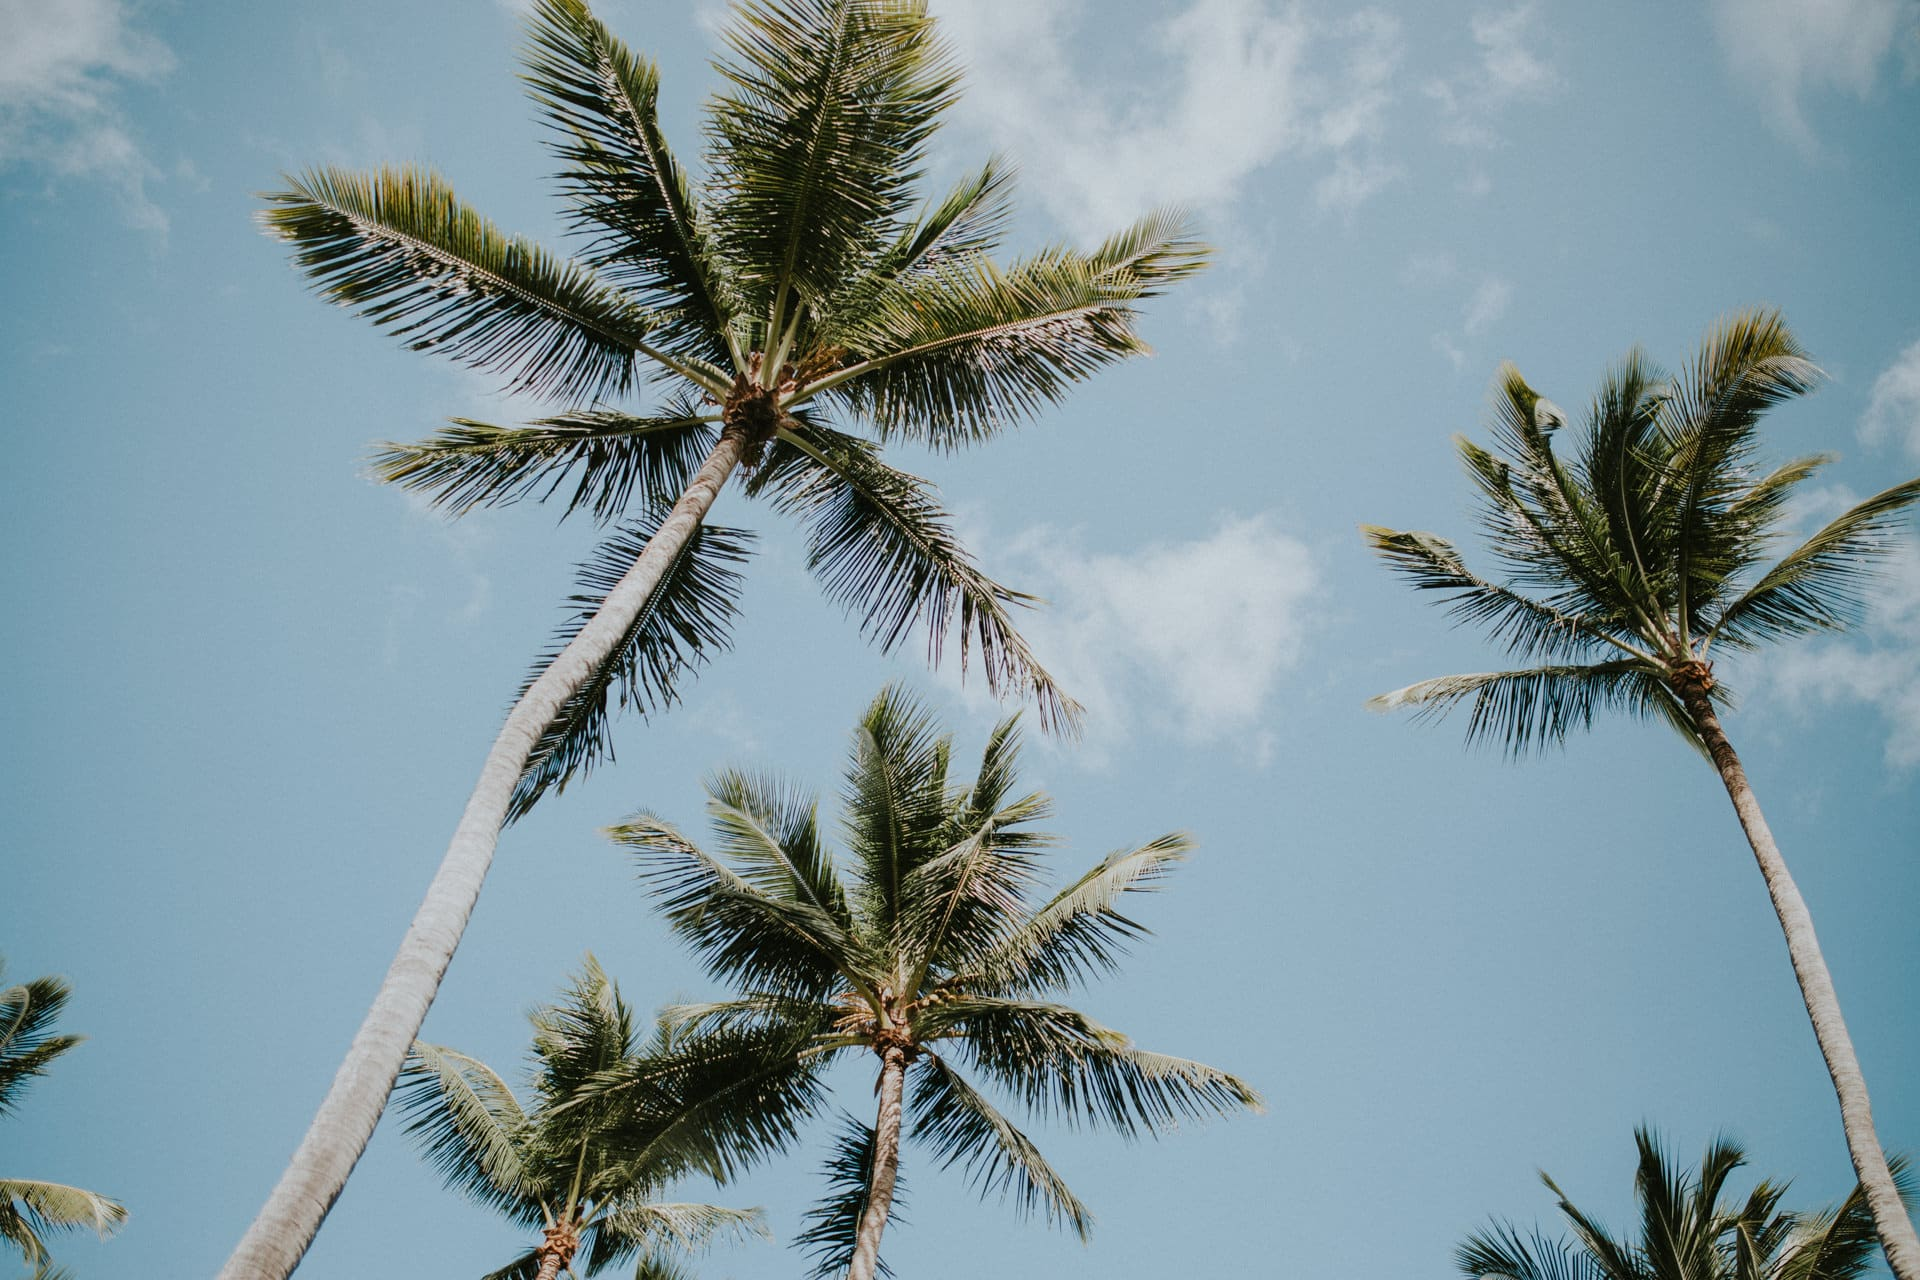 This Barbados wedding photo shows palm trees and a blue sky.